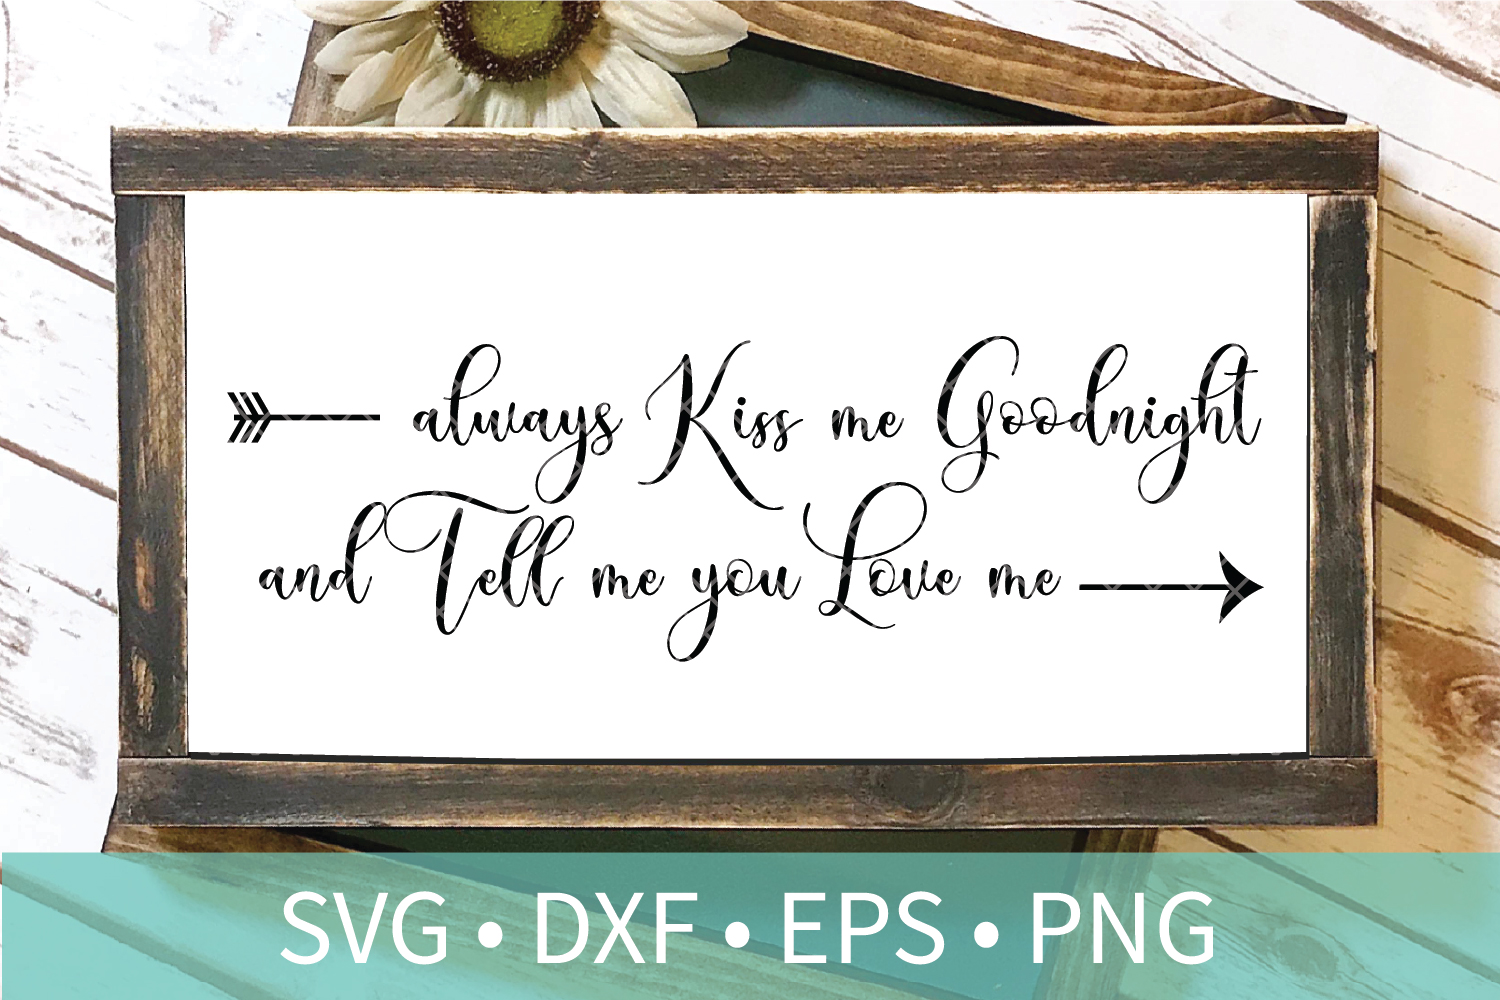 Sign Makers Quote Bundle SVG DXF EPS PNG Stencil Cut Files example image 7